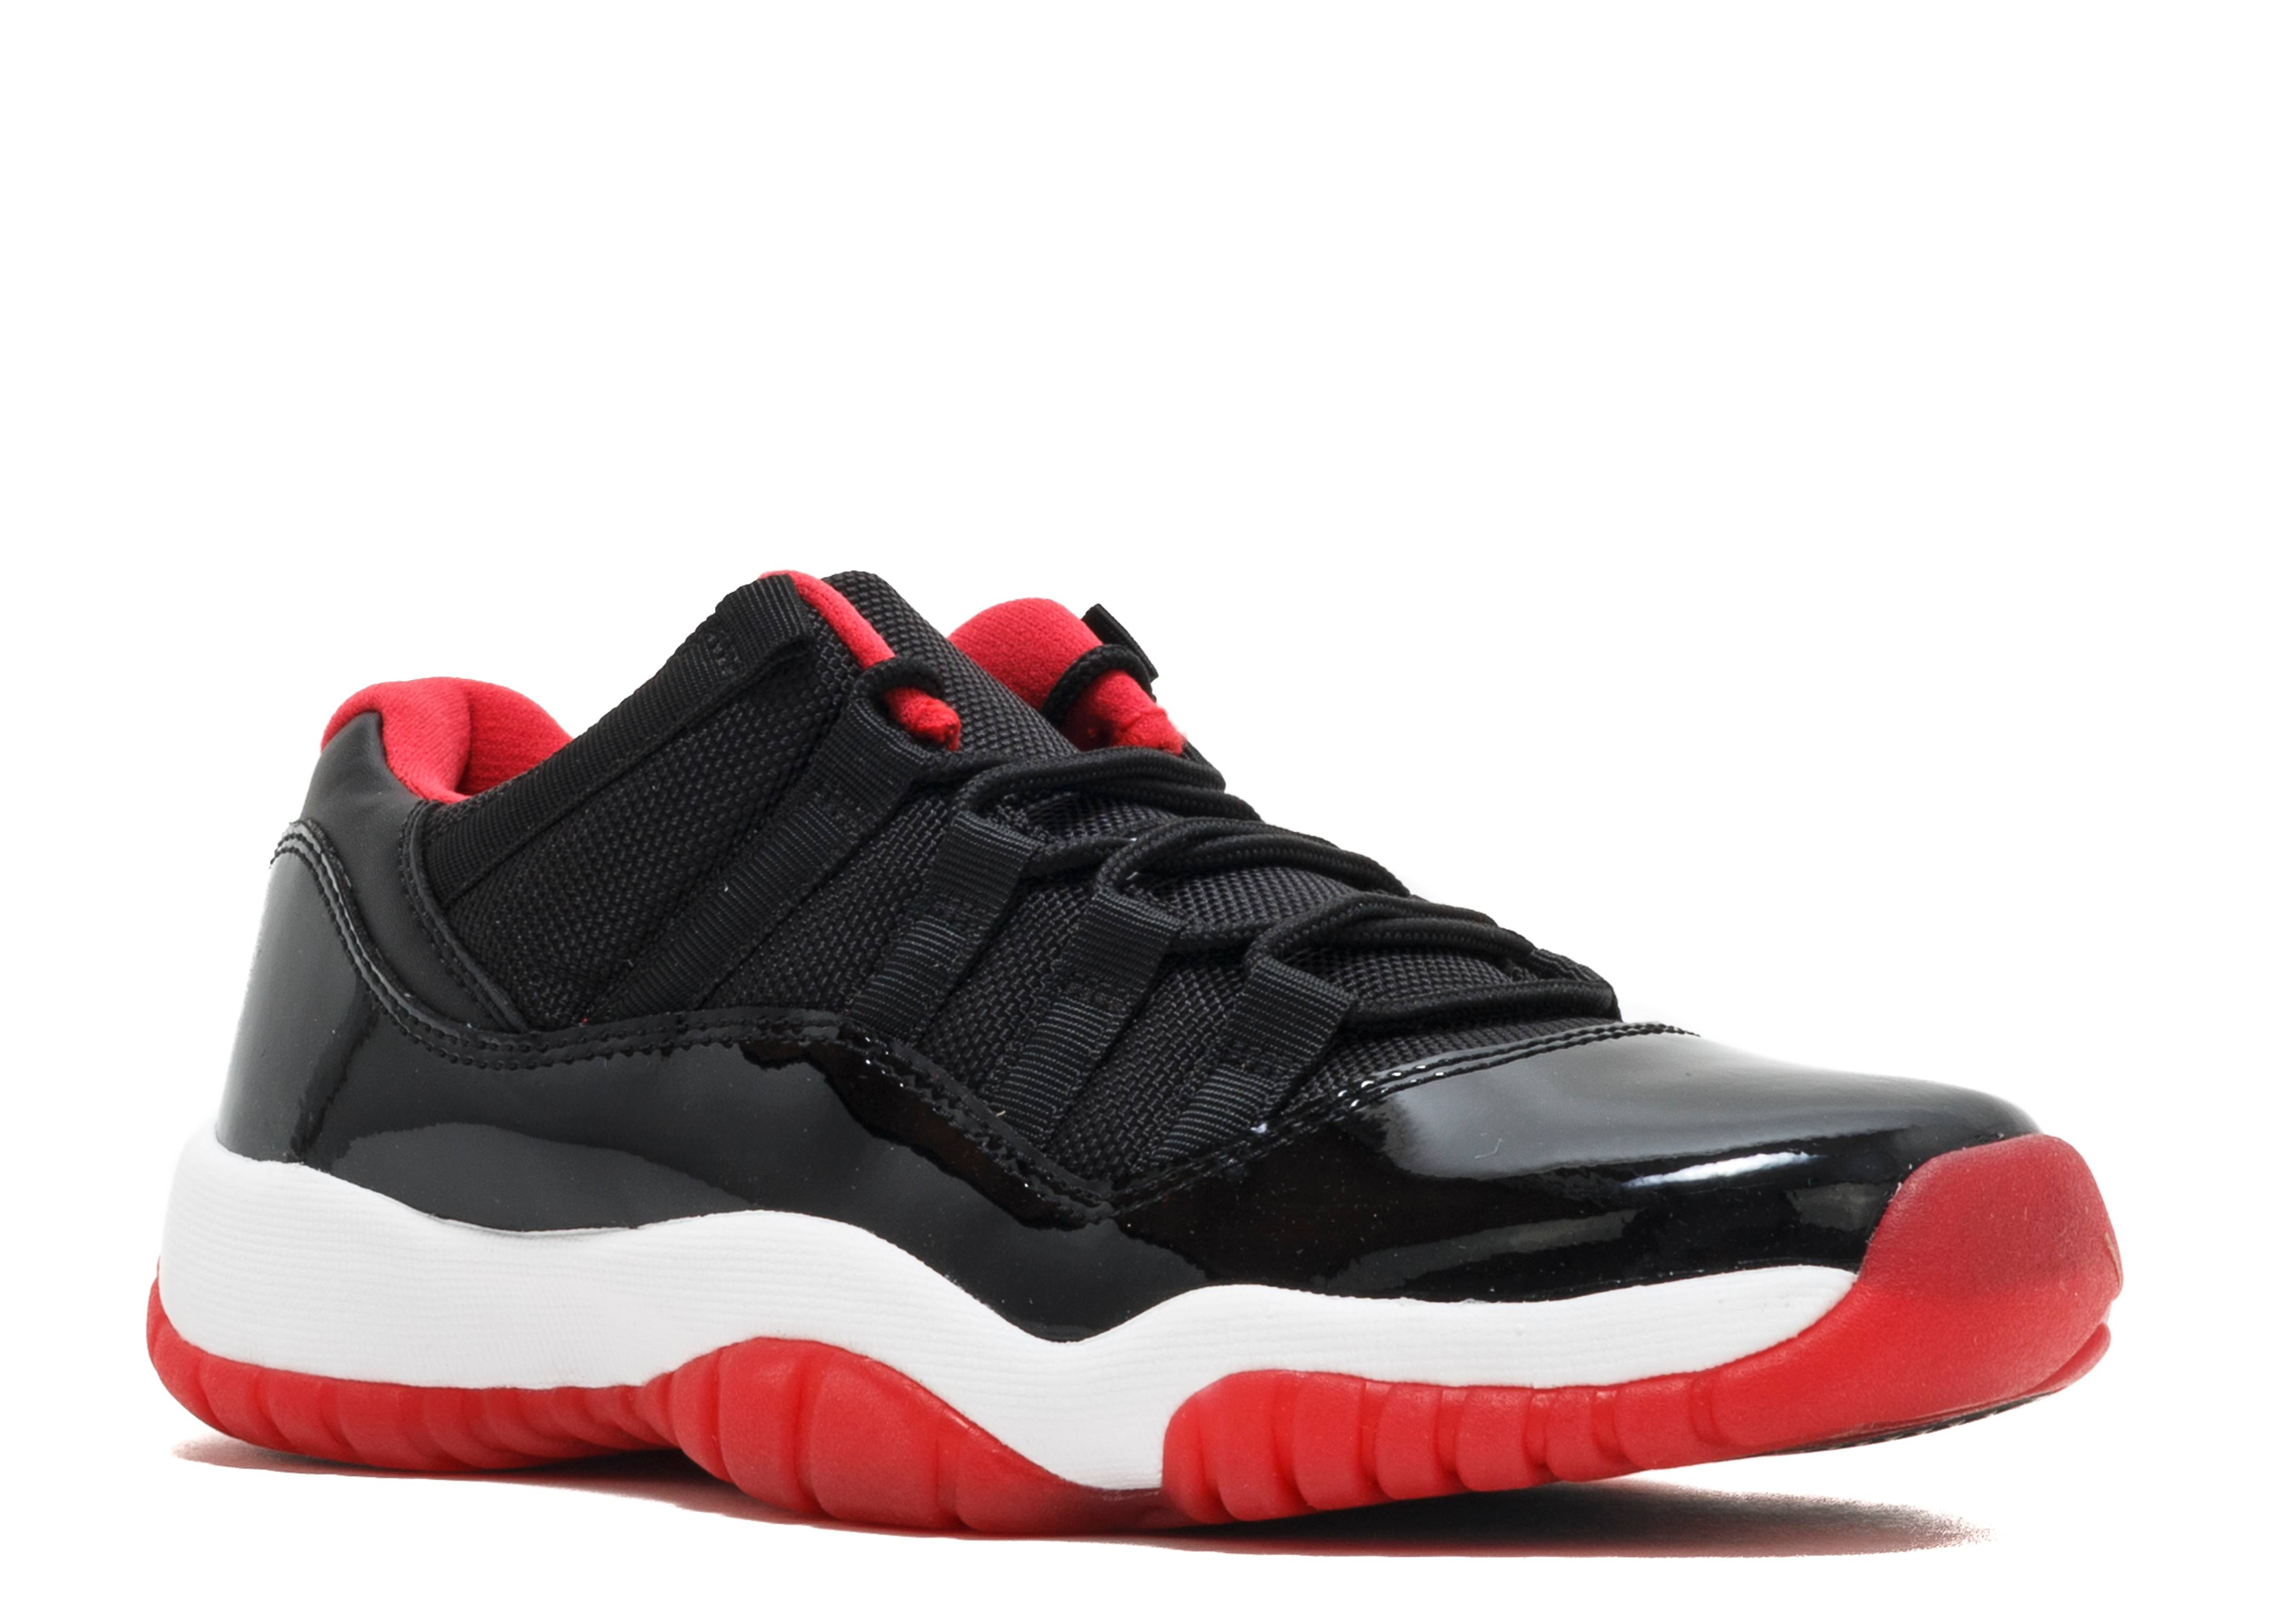 air jordan 11 retro bred